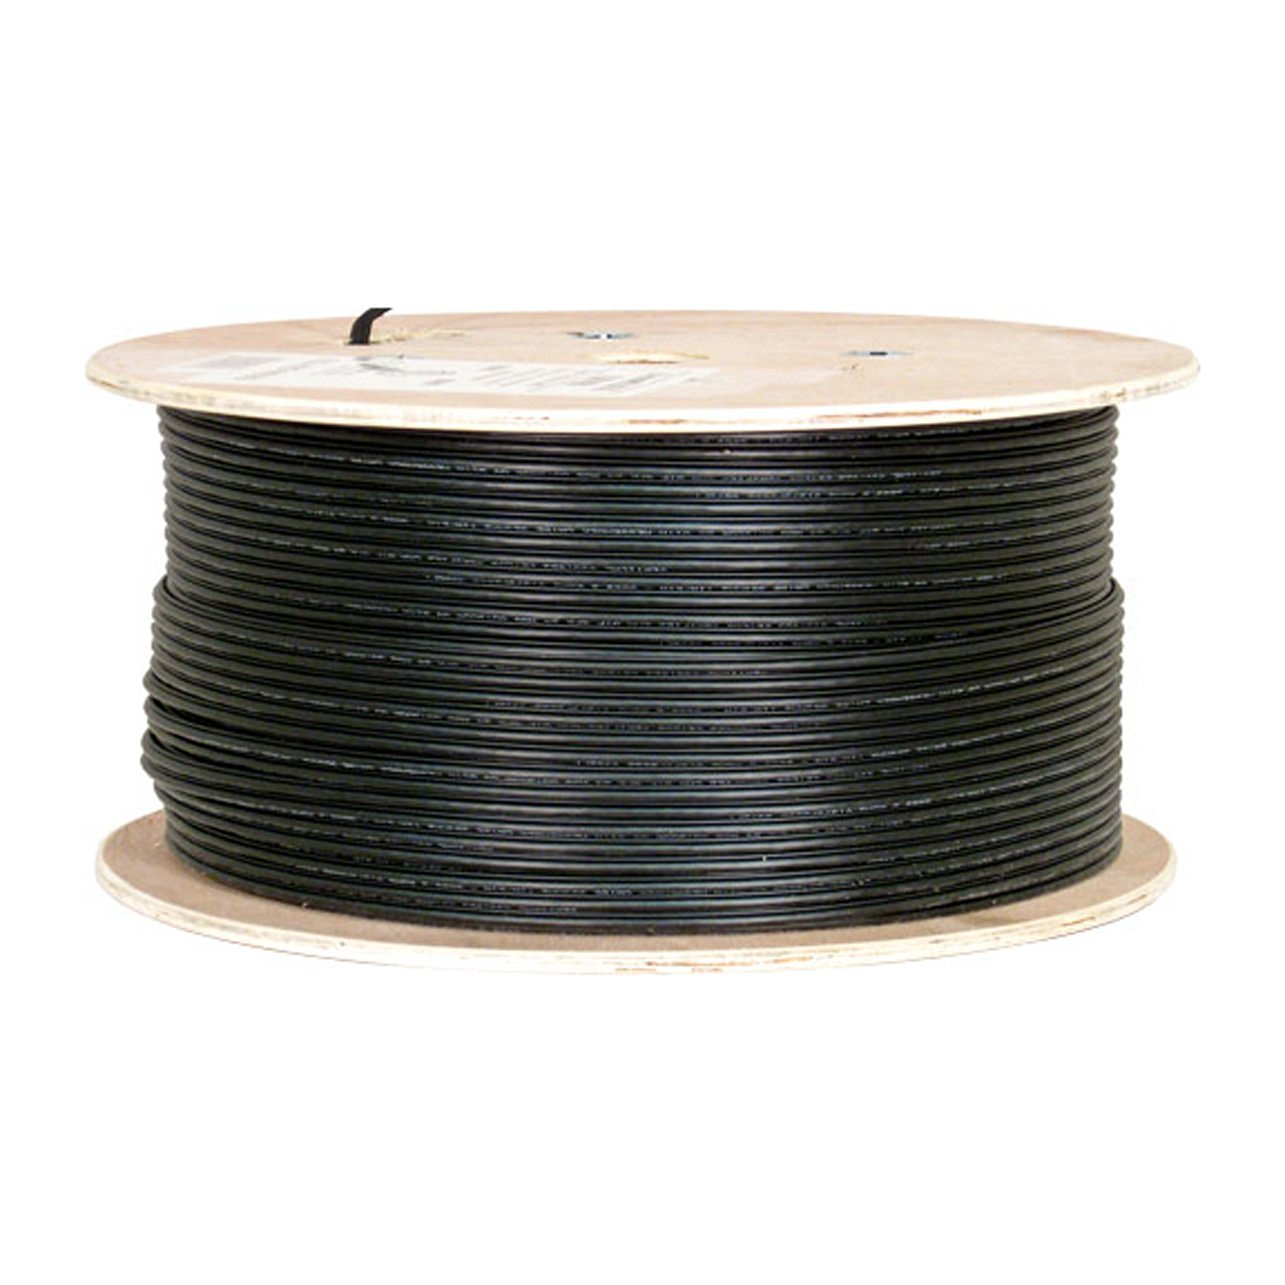 Vertical Cable Cat6, Shielded, UV Jacket, Outdoor, CMX, Messenger, 1000ft, Black, Bulk Ethernet Cable, Wooden Spool